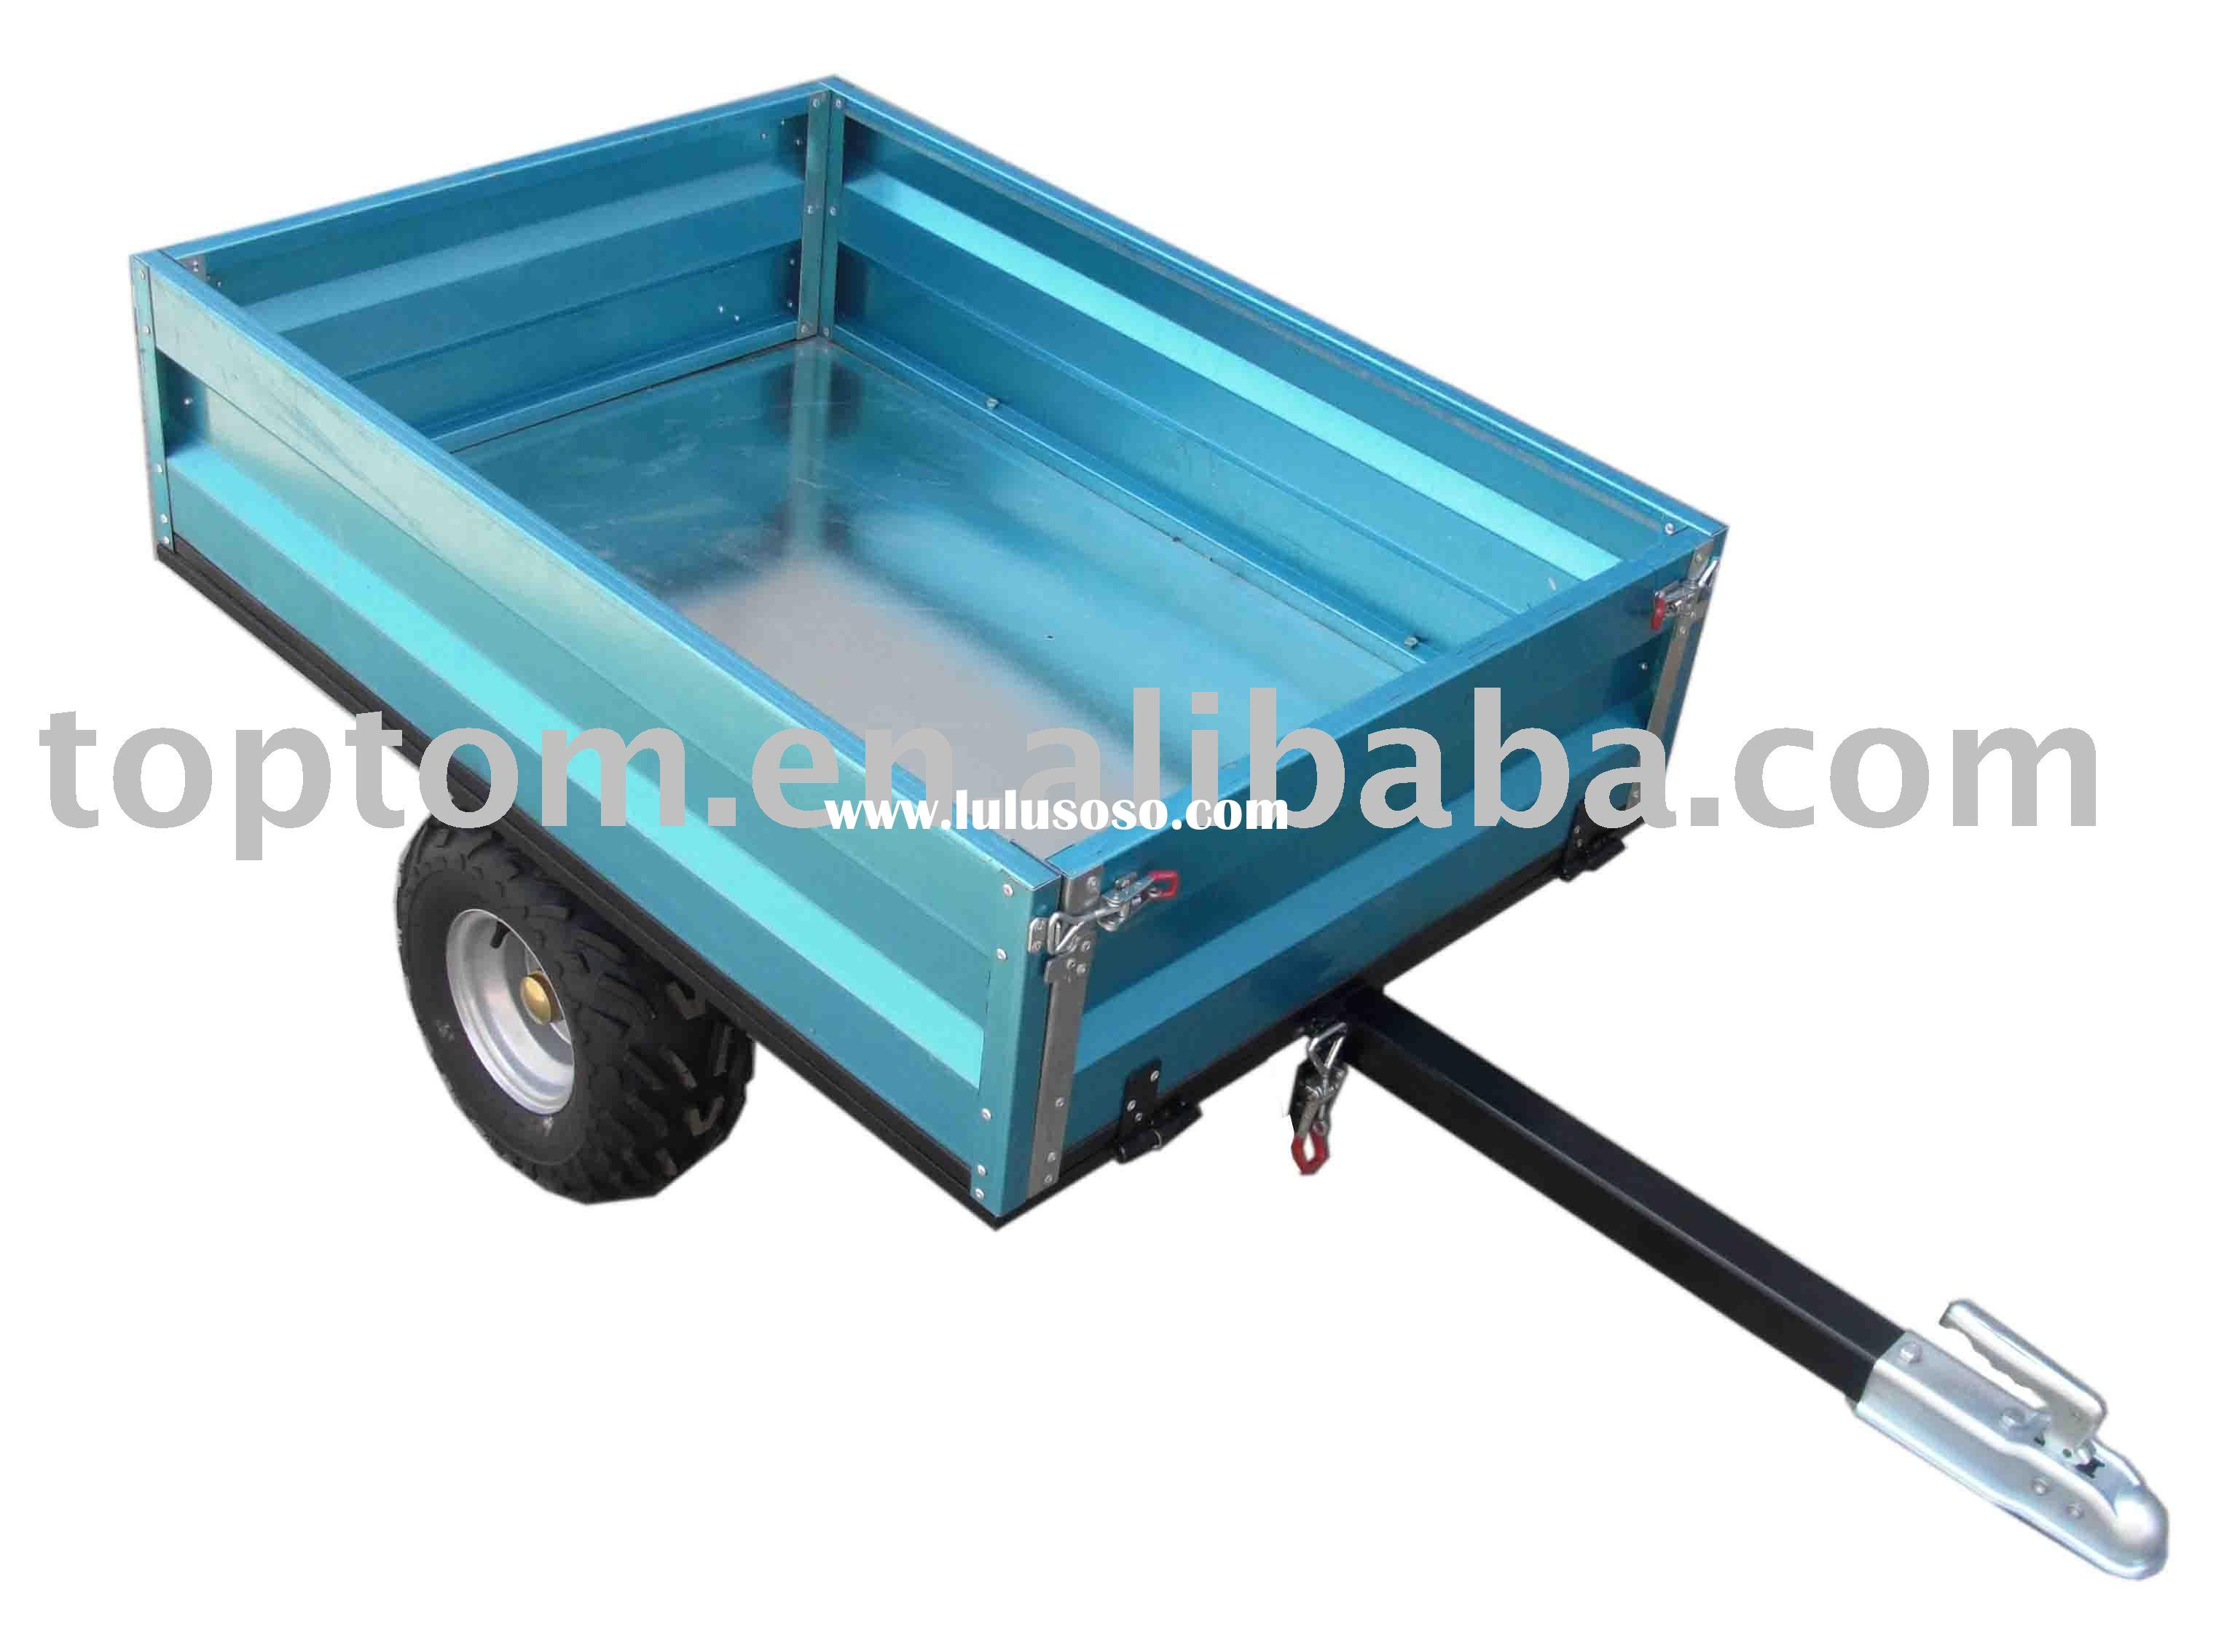 small box trailer, small box trailer Manufacturers in LuLuSoSo.com ...